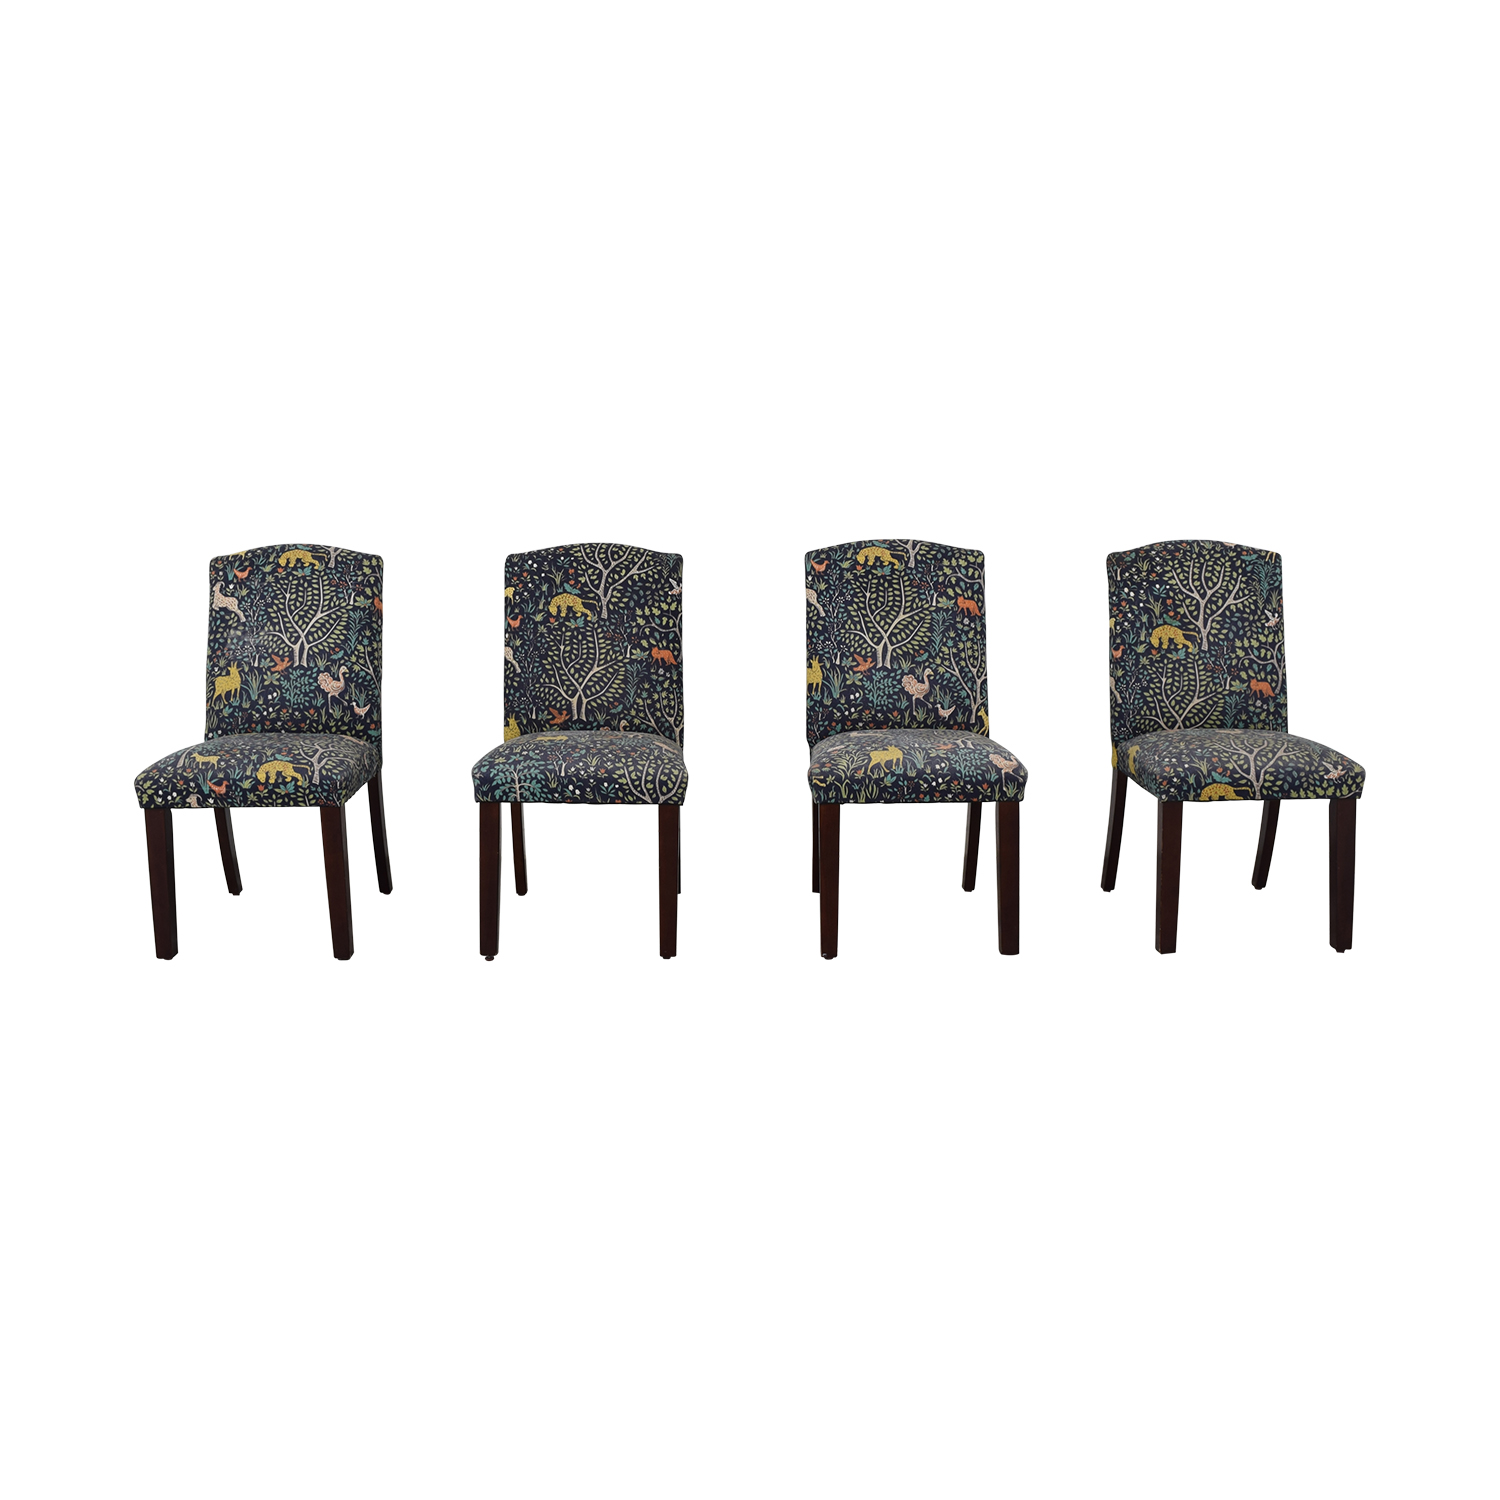 Skyline Furniture Skyline Furniture Dining Chairs on sale